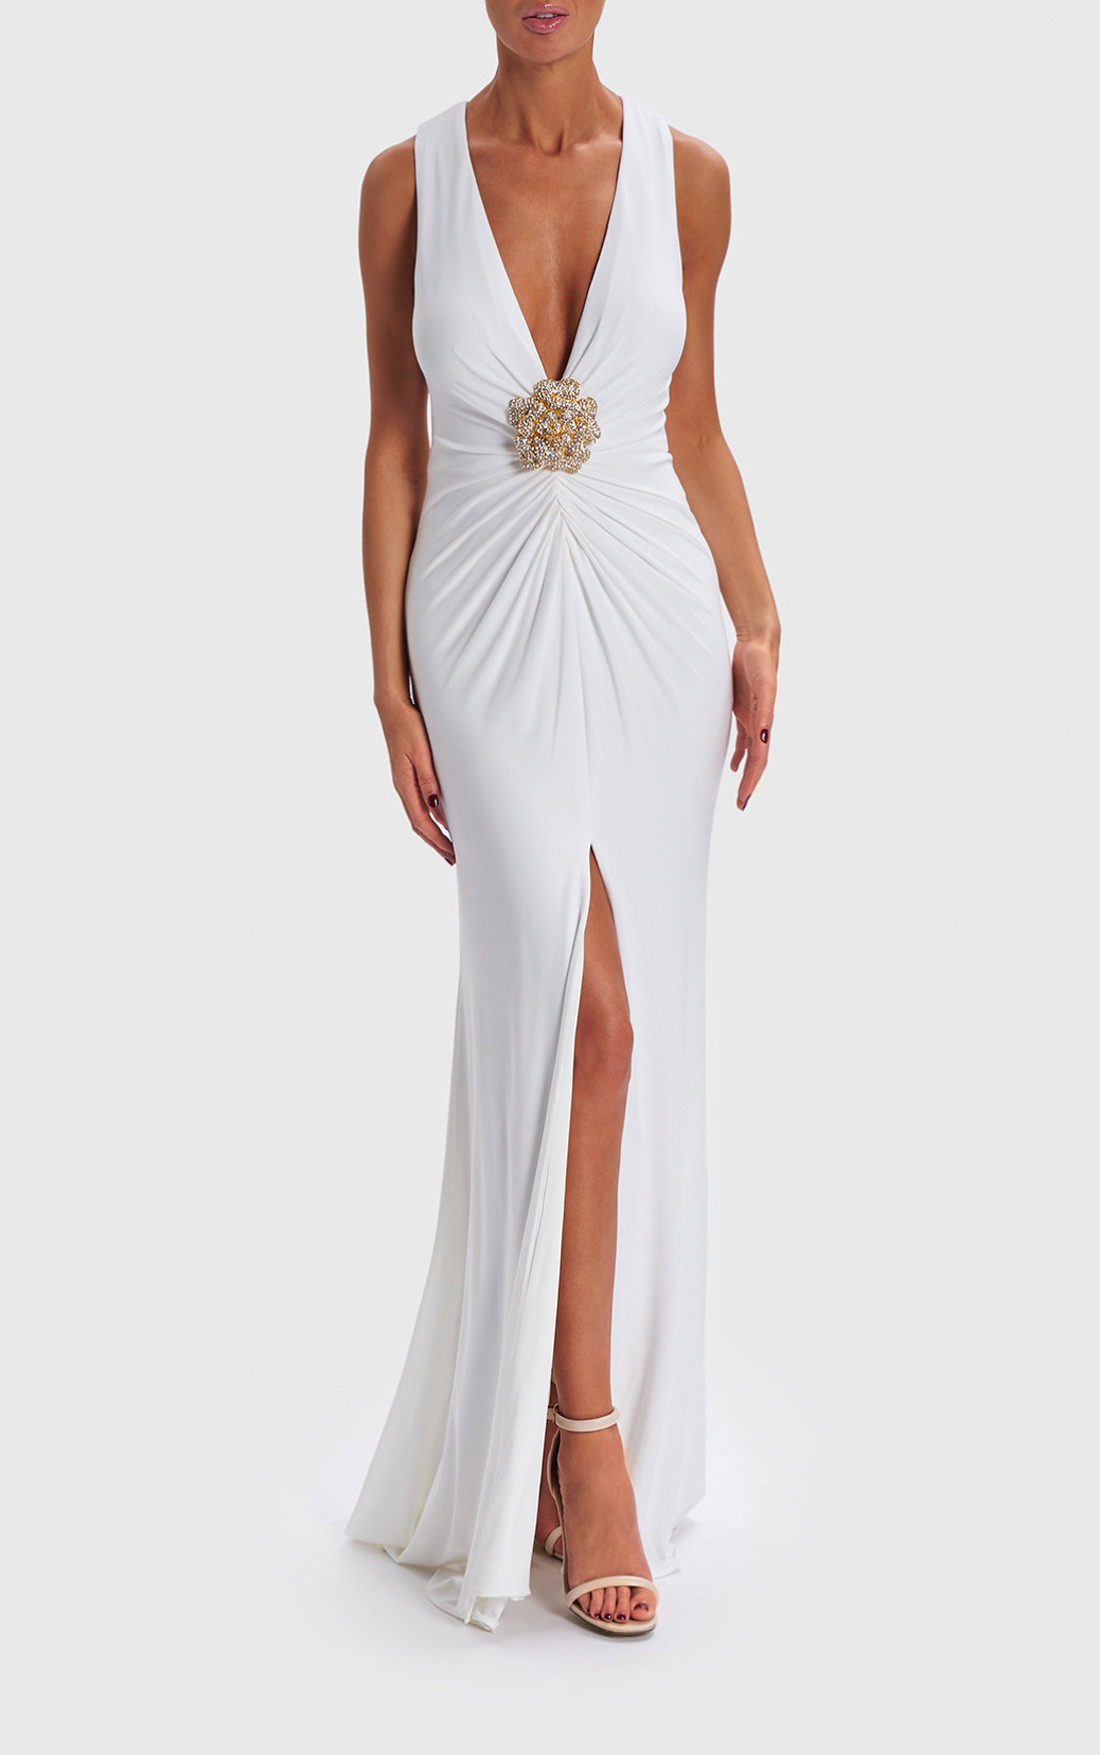 2dfcbb8ae10c Forever Unique - Jeannie Ivory Gown With Diamante Brooch (AB0921) ...